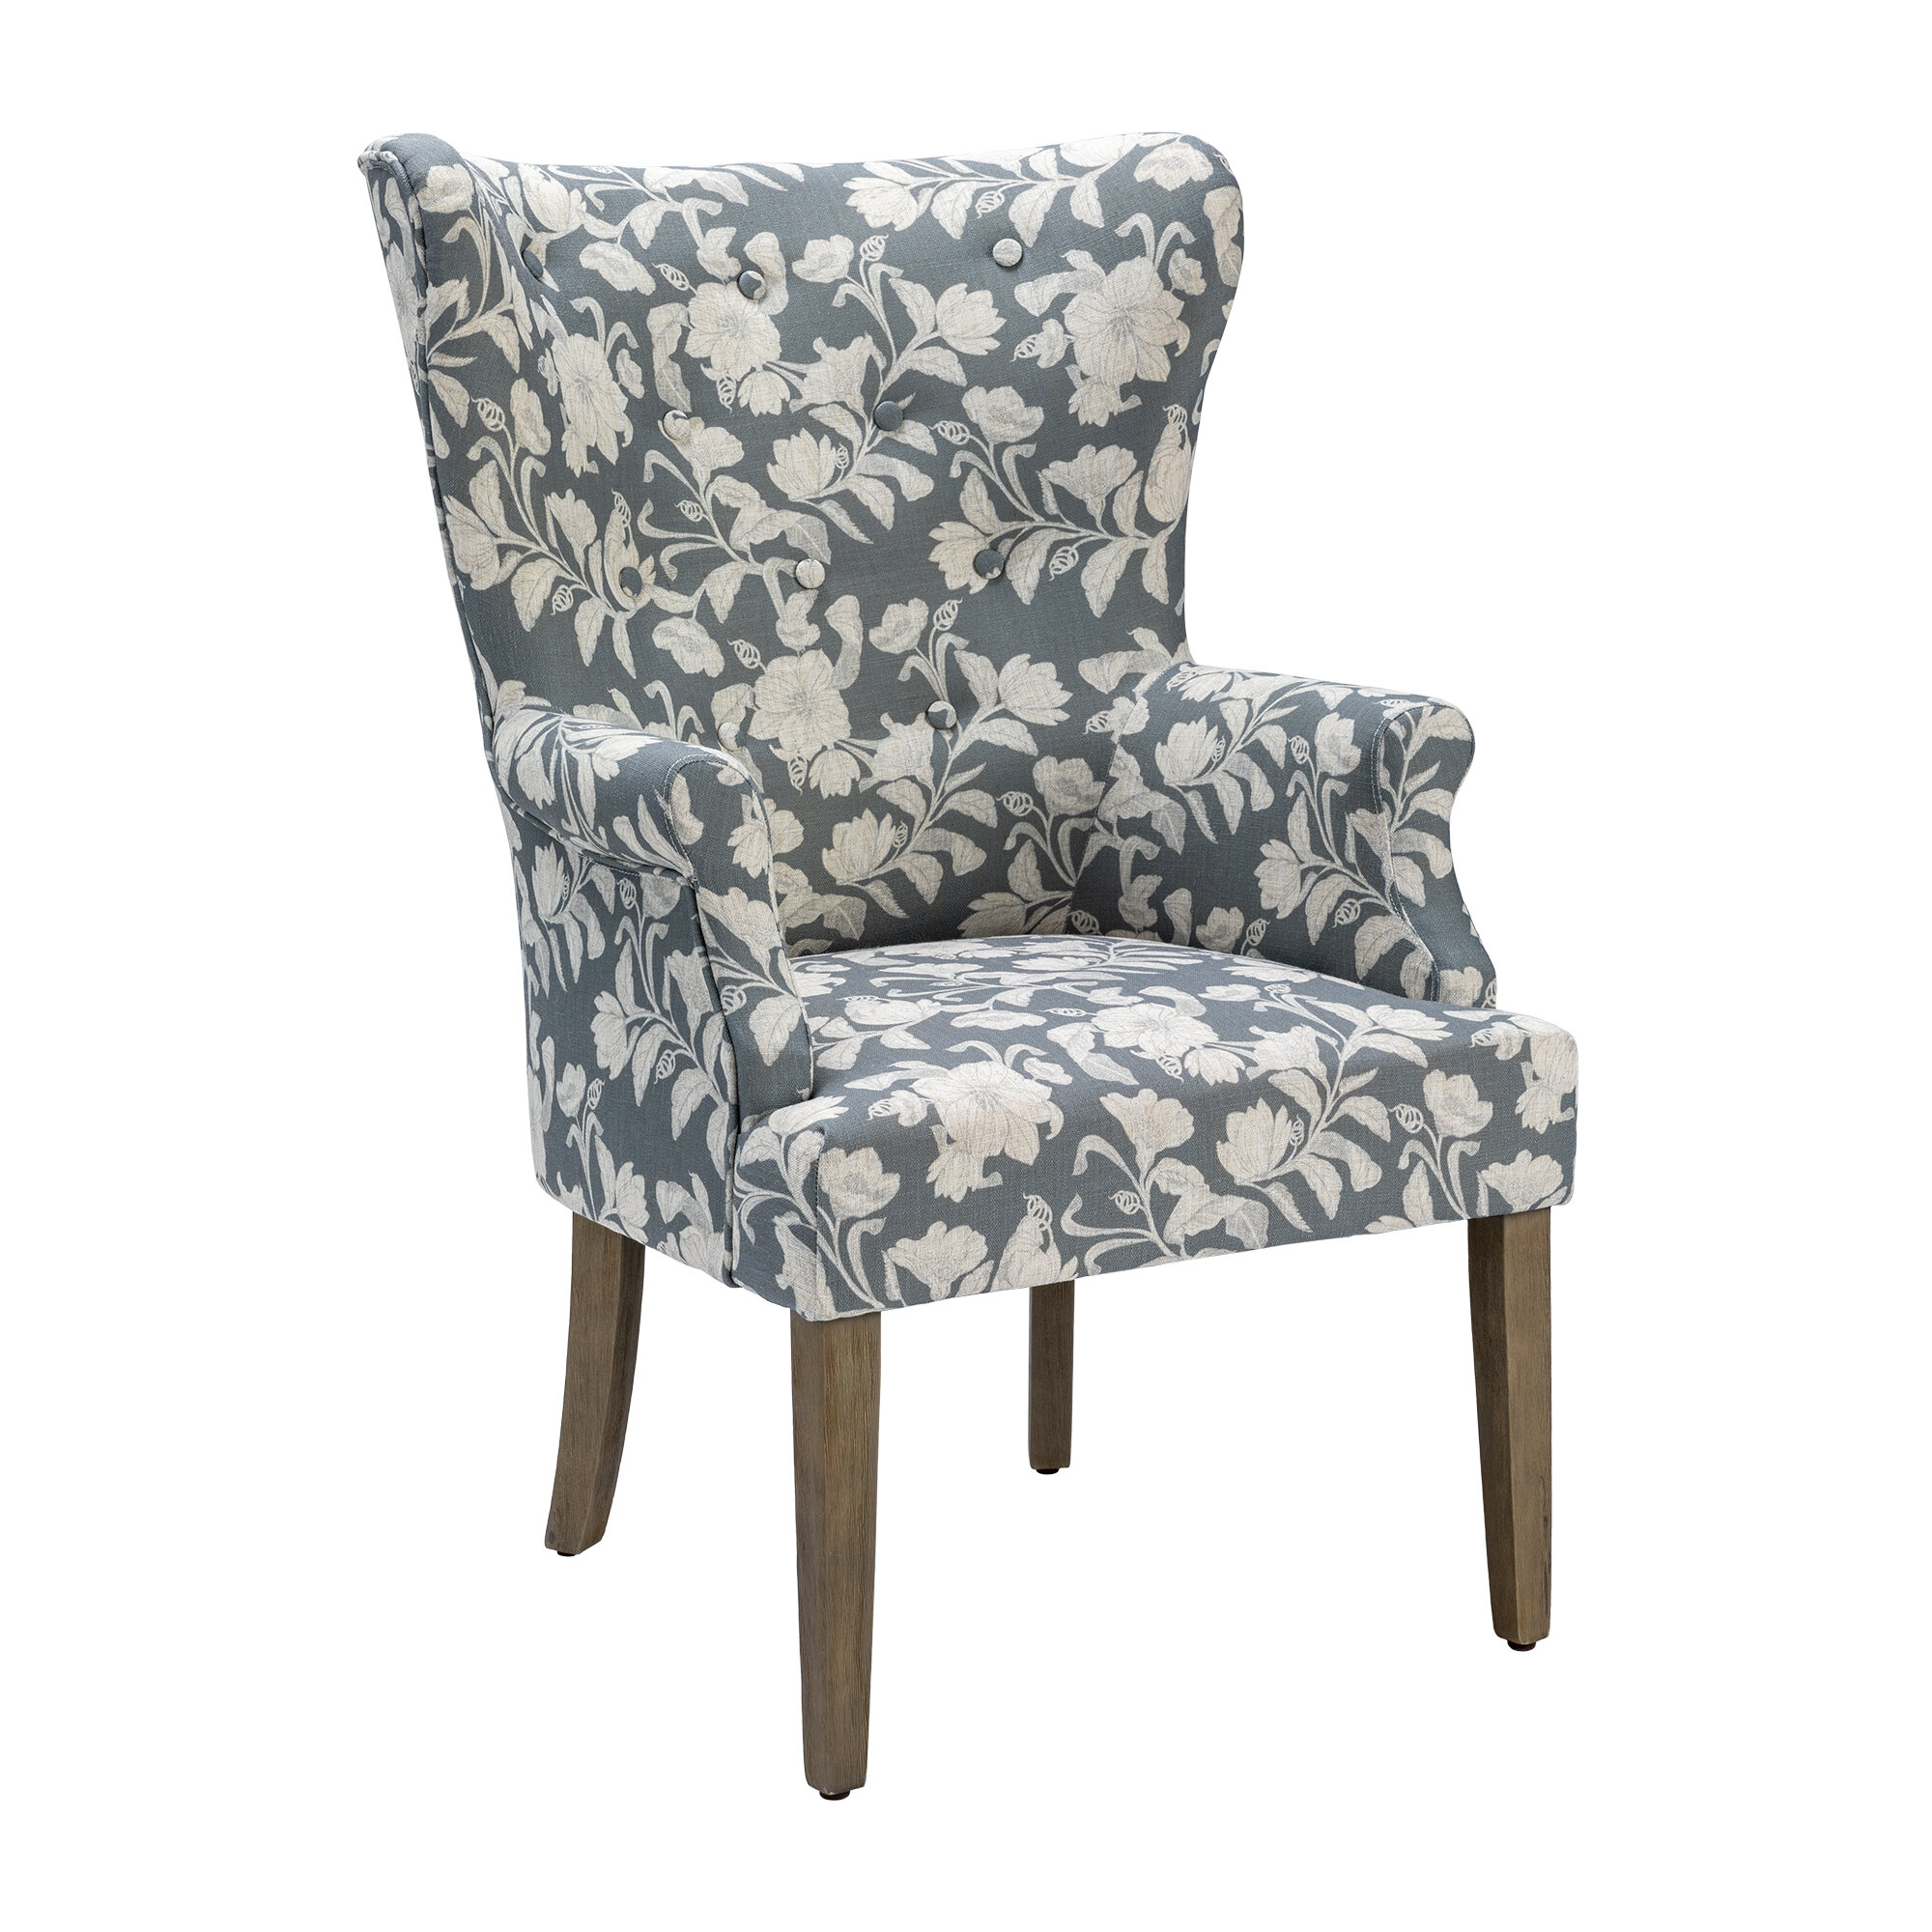 Dash Upholstered Floral Wingback Chair